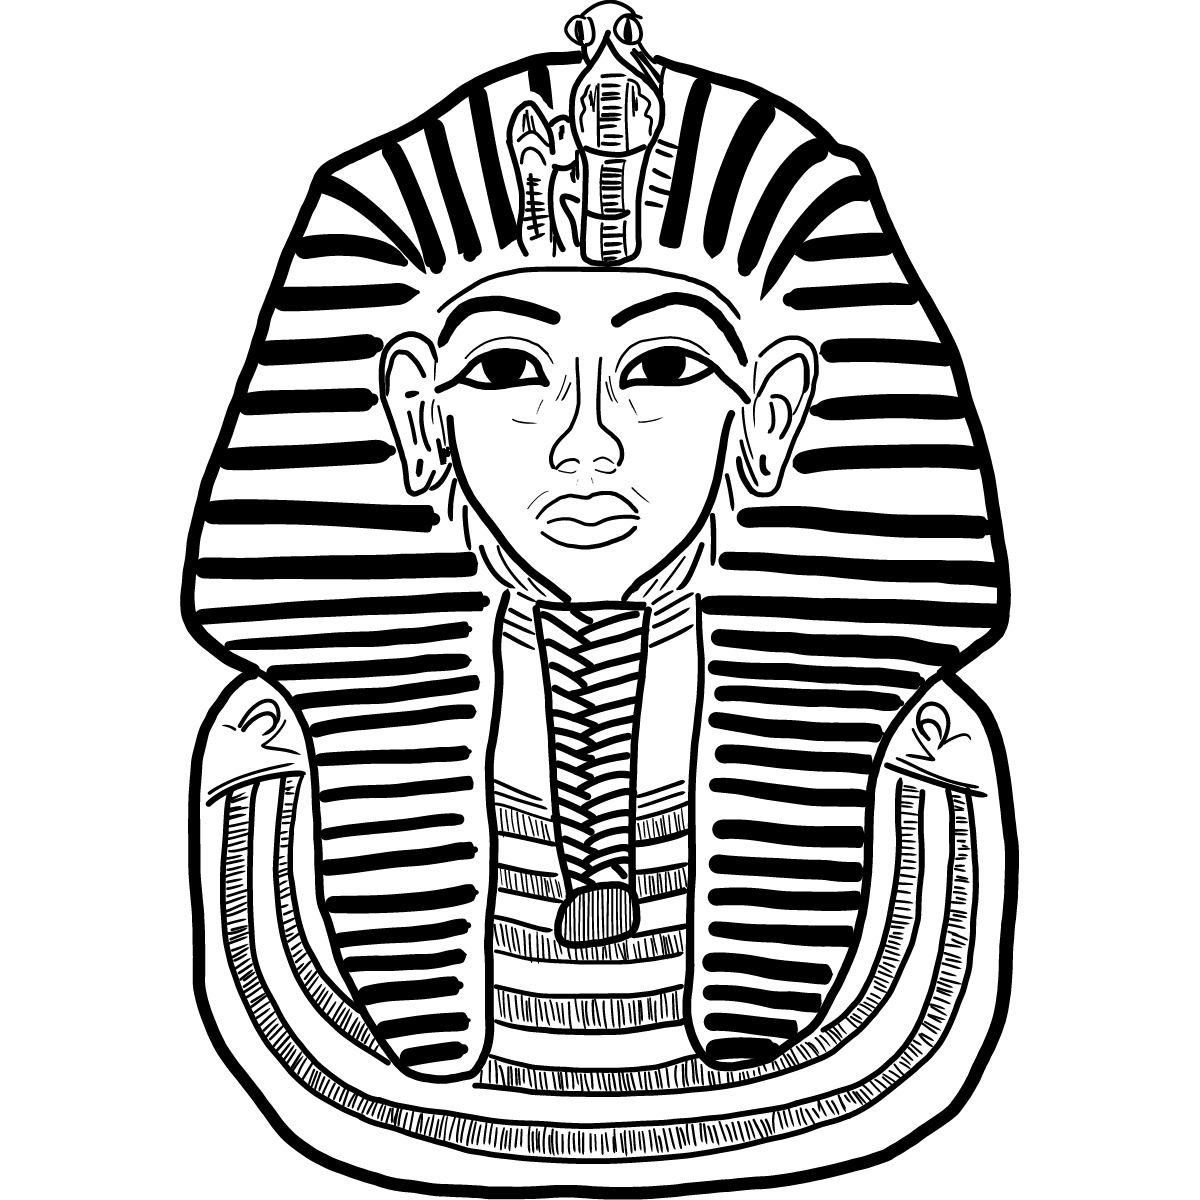 Tutankhamun black and white illustration | Drawing/ illustration ...